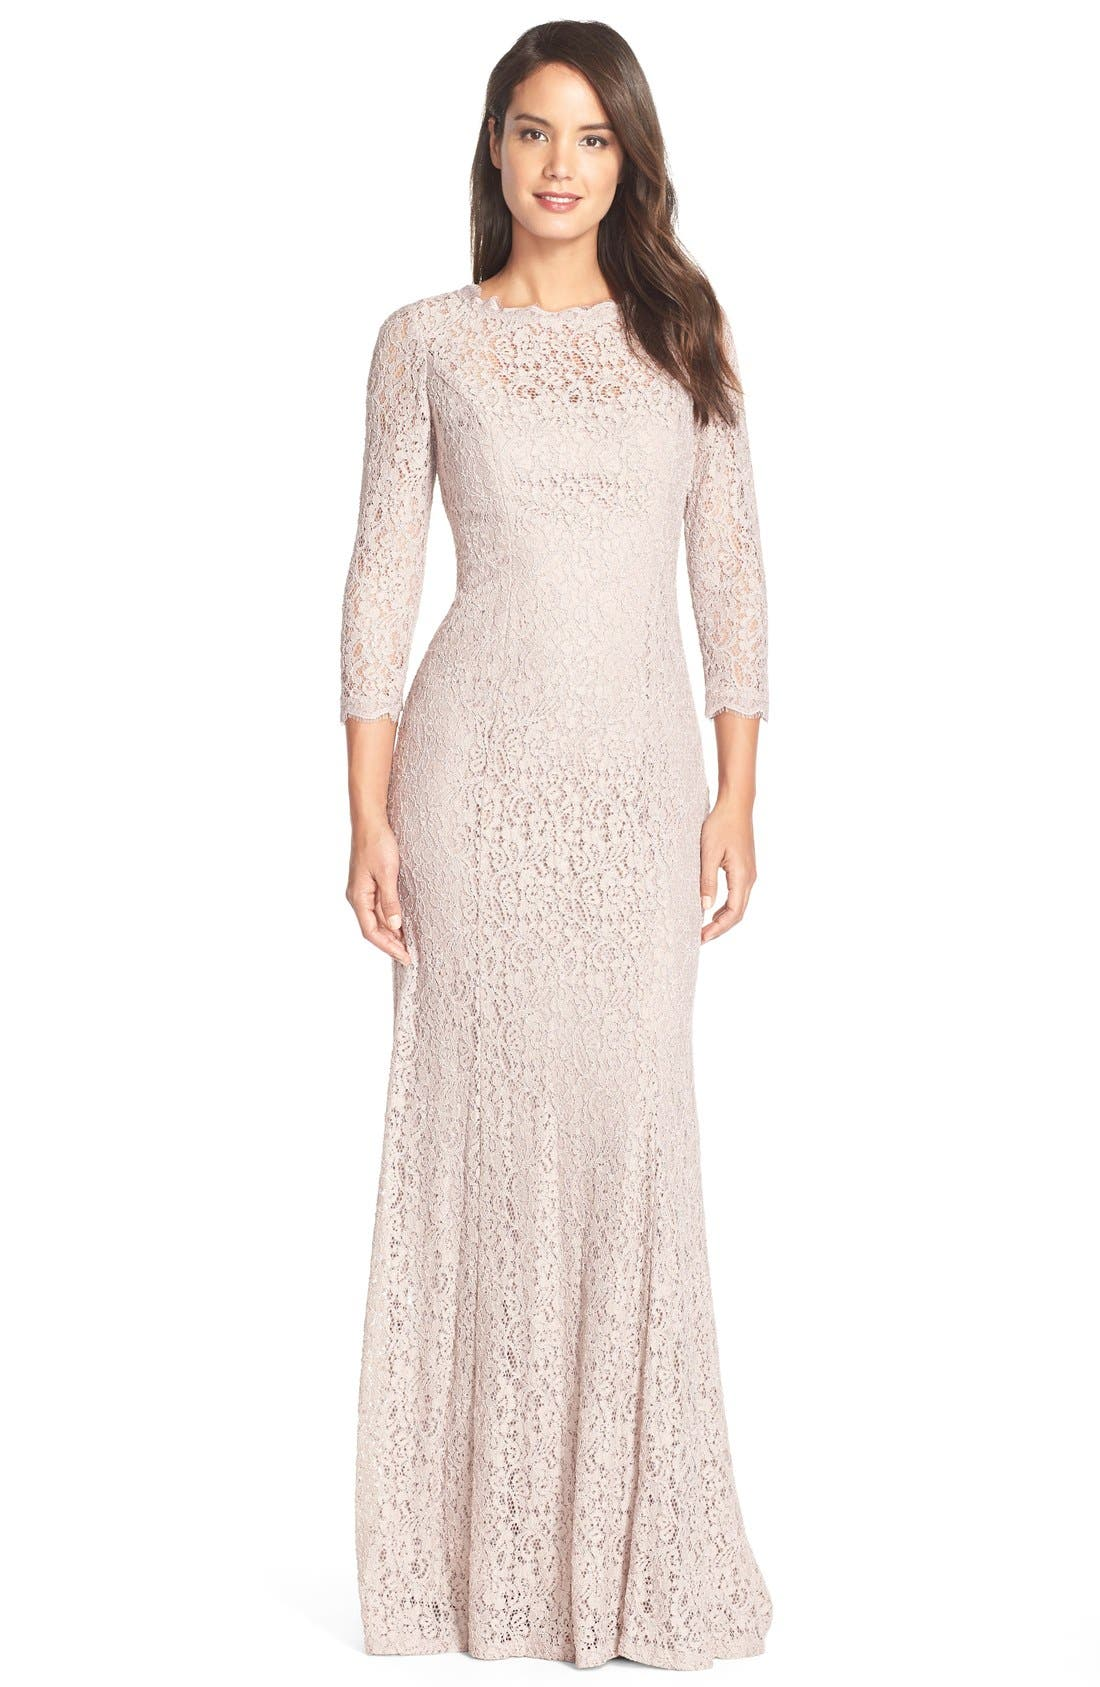 Main Image - Adrianna Papell Illusion Sleeve Lace Mermaid Gown (Regular & Petite)